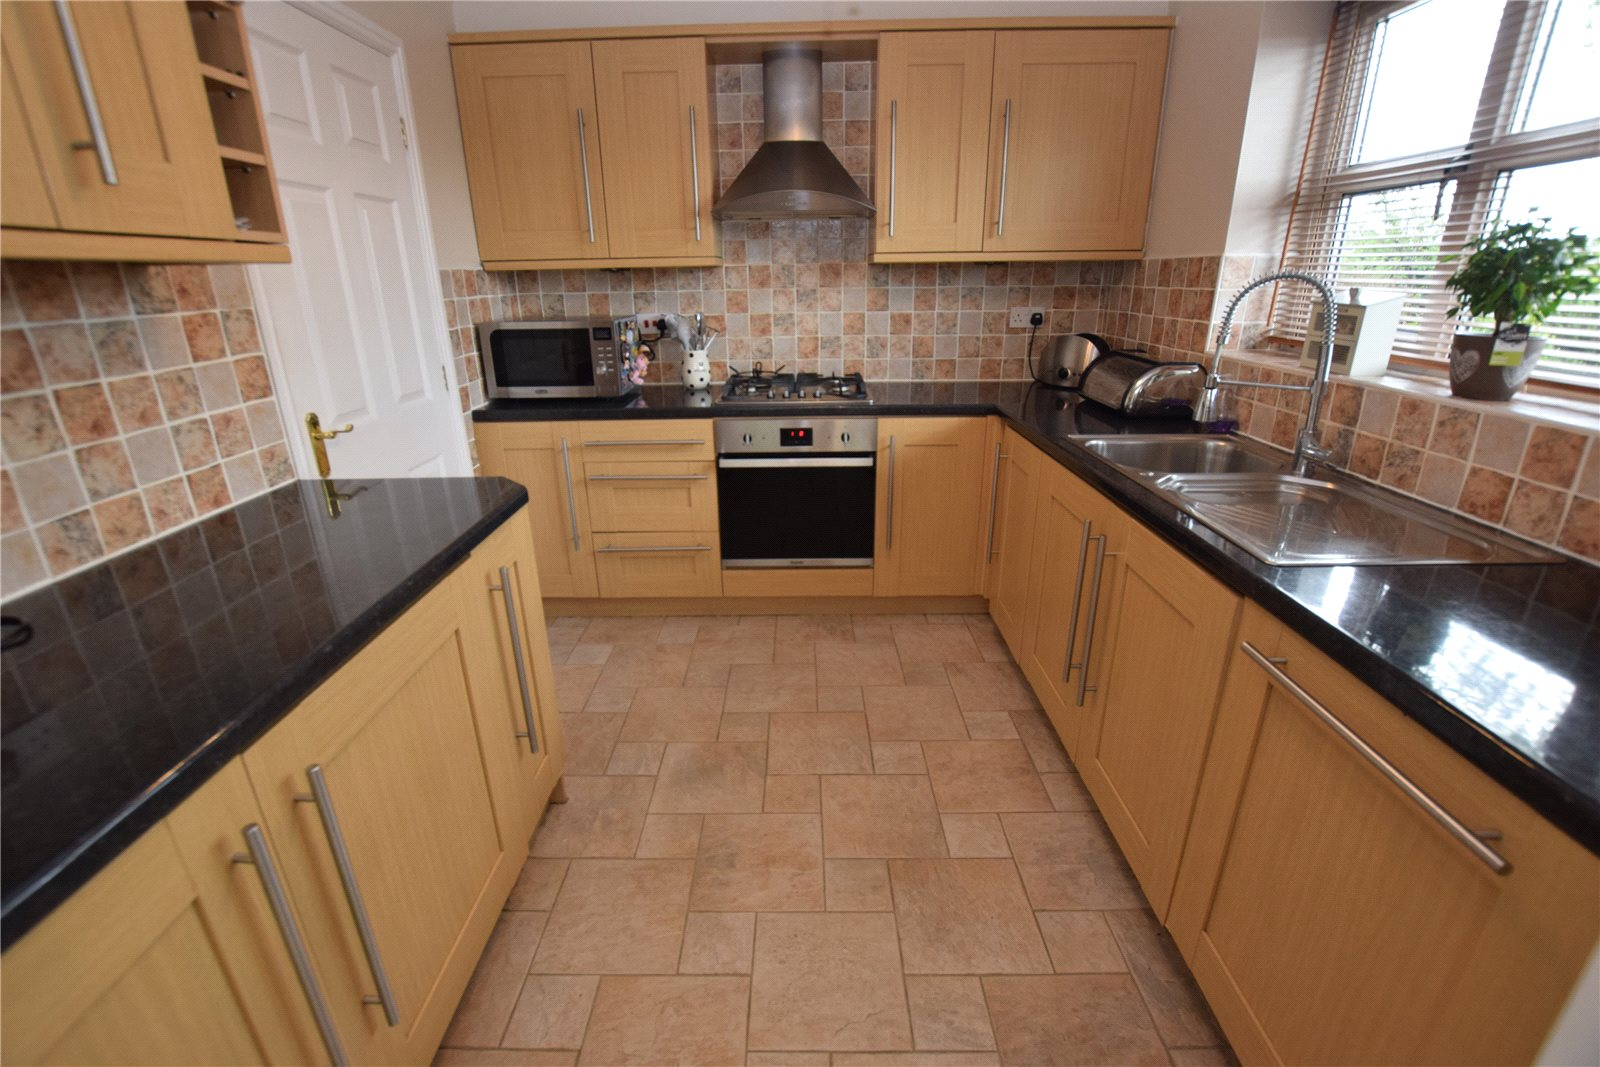 Property for sale in Wortley, fitted kitchen, beech and black counter top